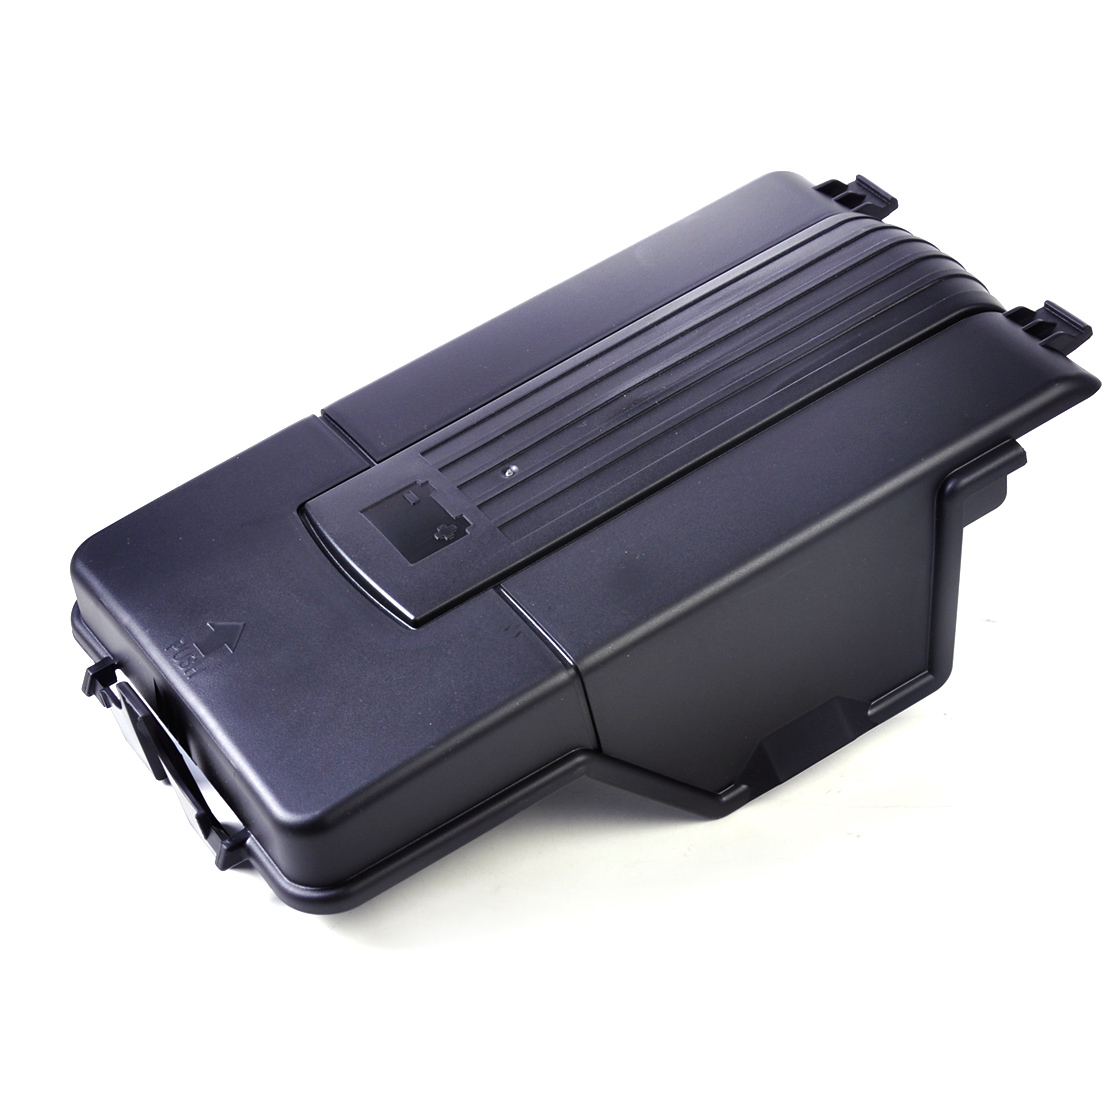 battery tray cover trim for vw jetta golf touran tiguan 1kd 915 443 ebay. Black Bedroom Furniture Sets. Home Design Ideas